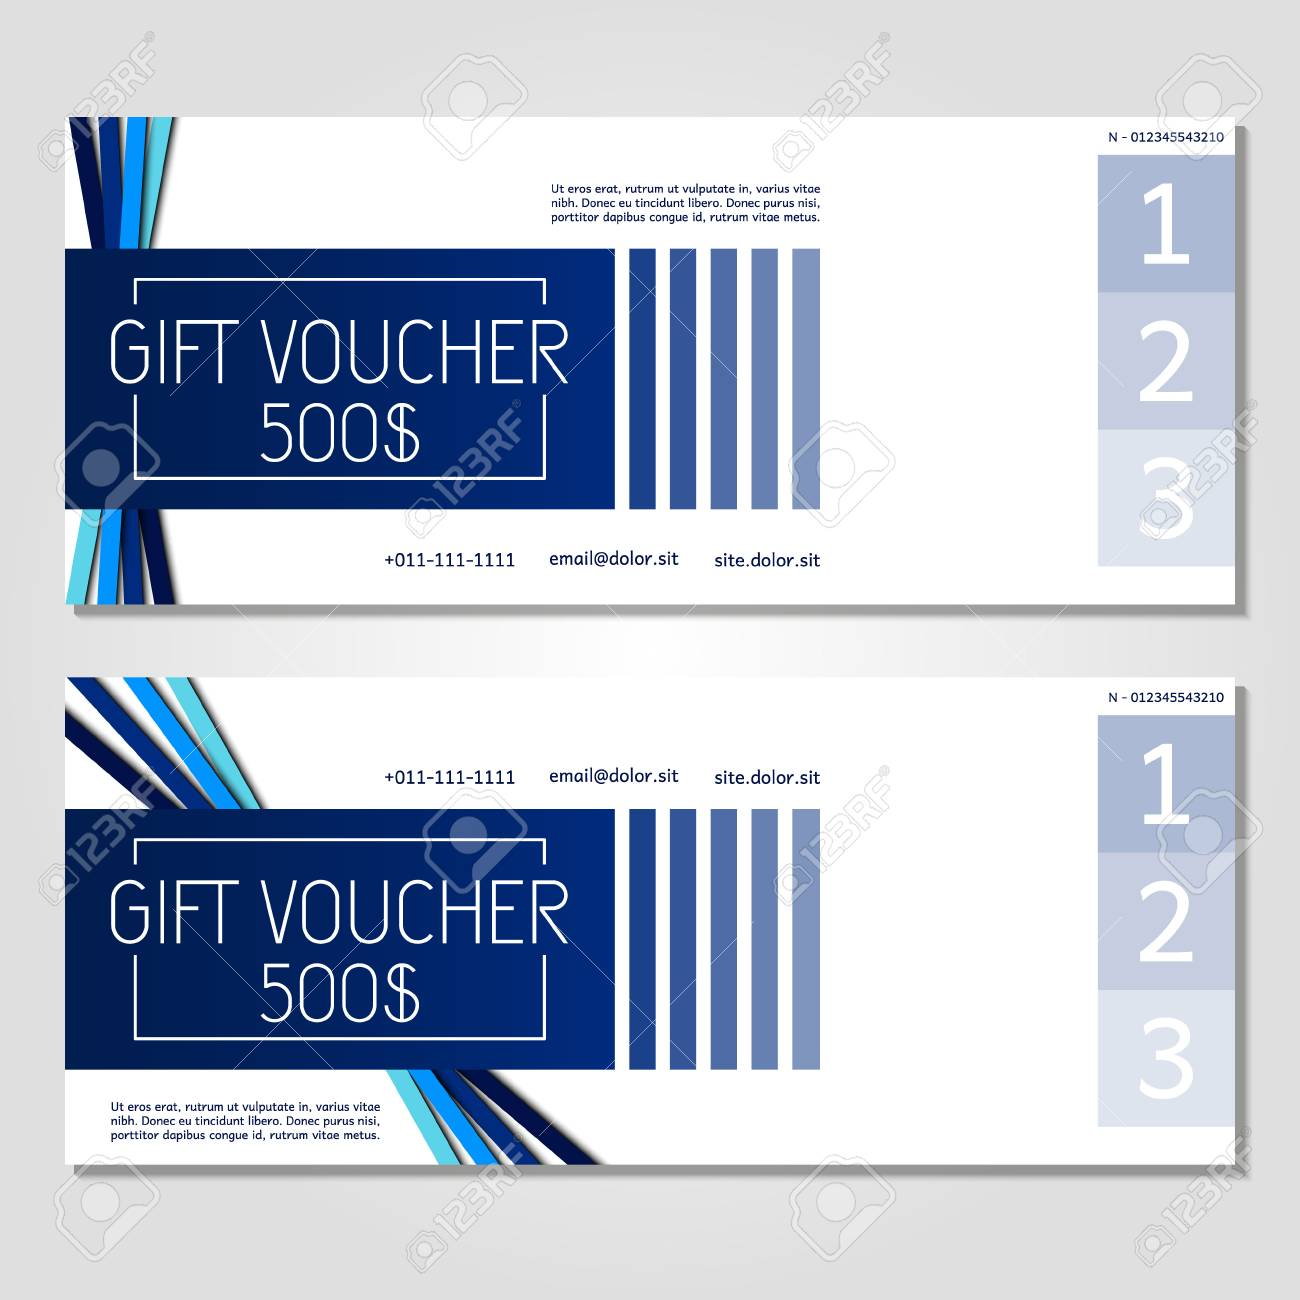 Gift Voucher Vector Illustration Coupon Template For Company Corporate Style Present Easy To Use And